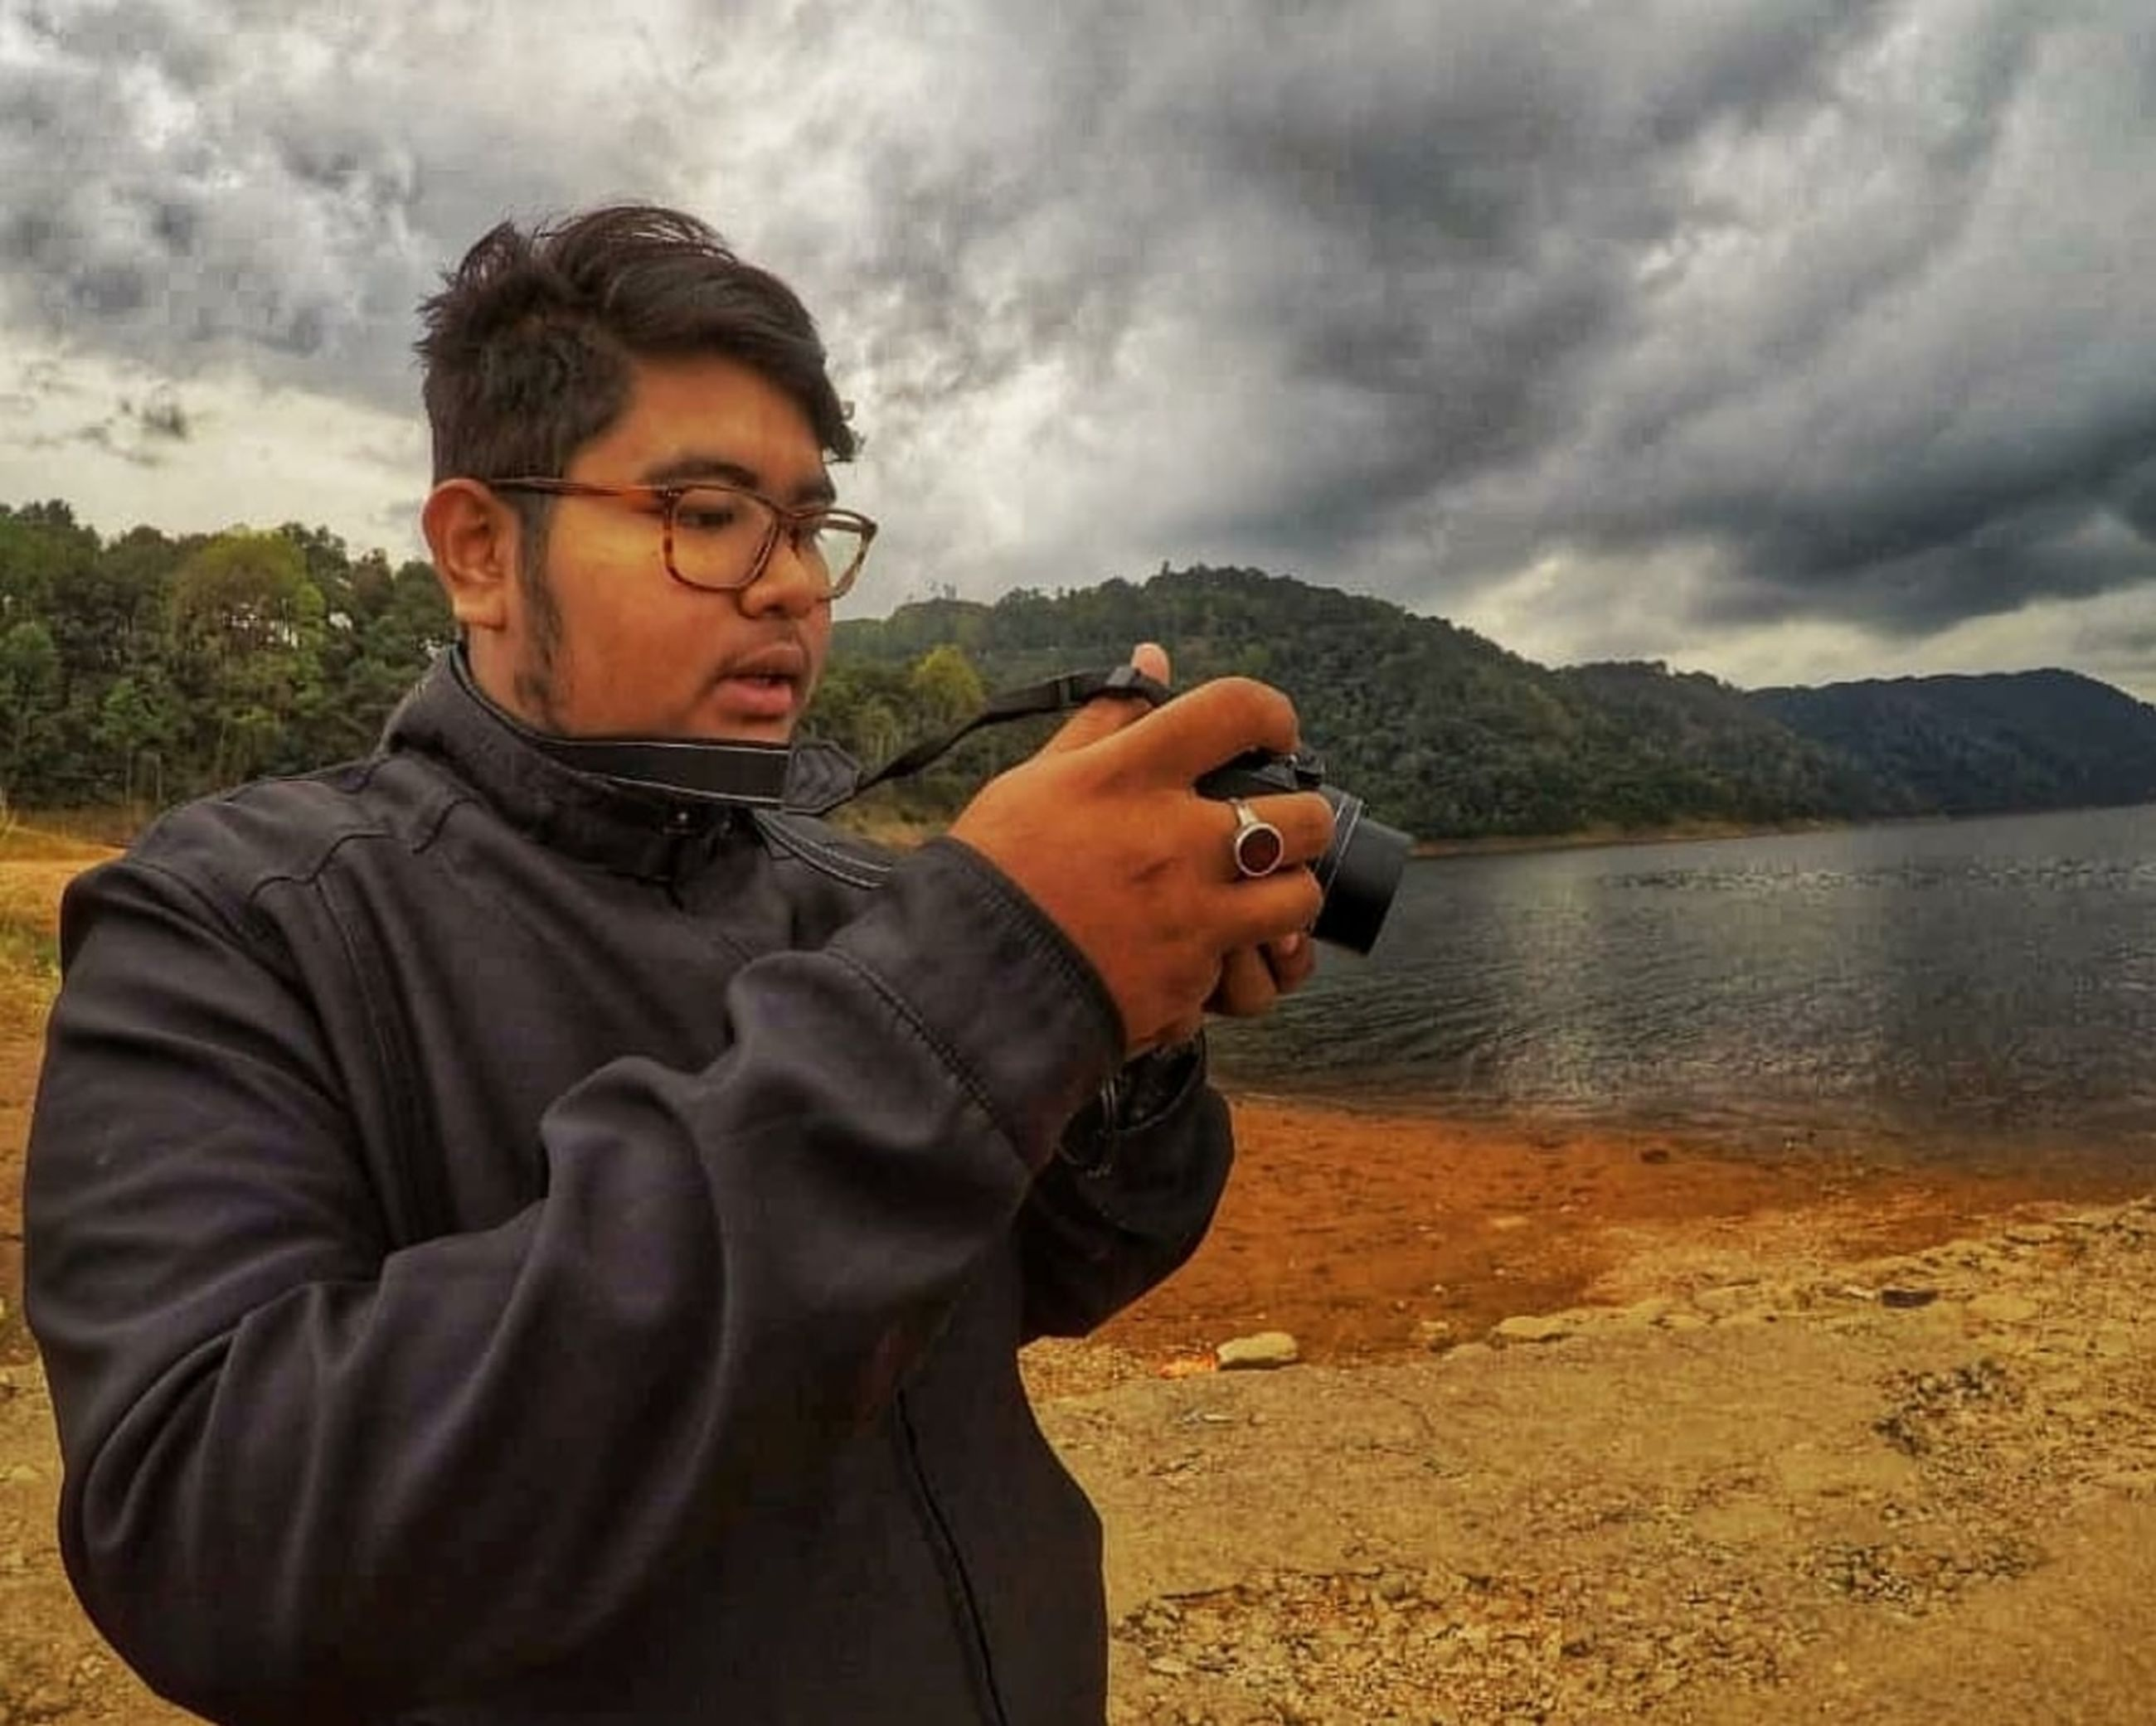 water, waist up, glasses, one person, cloud - sky, sky, men, nature, eyeglasses, standing, adult, males, lake, portrait, looking, mid adult, holding, casual clothing, mature adult, outdoors, mature men, contemplation